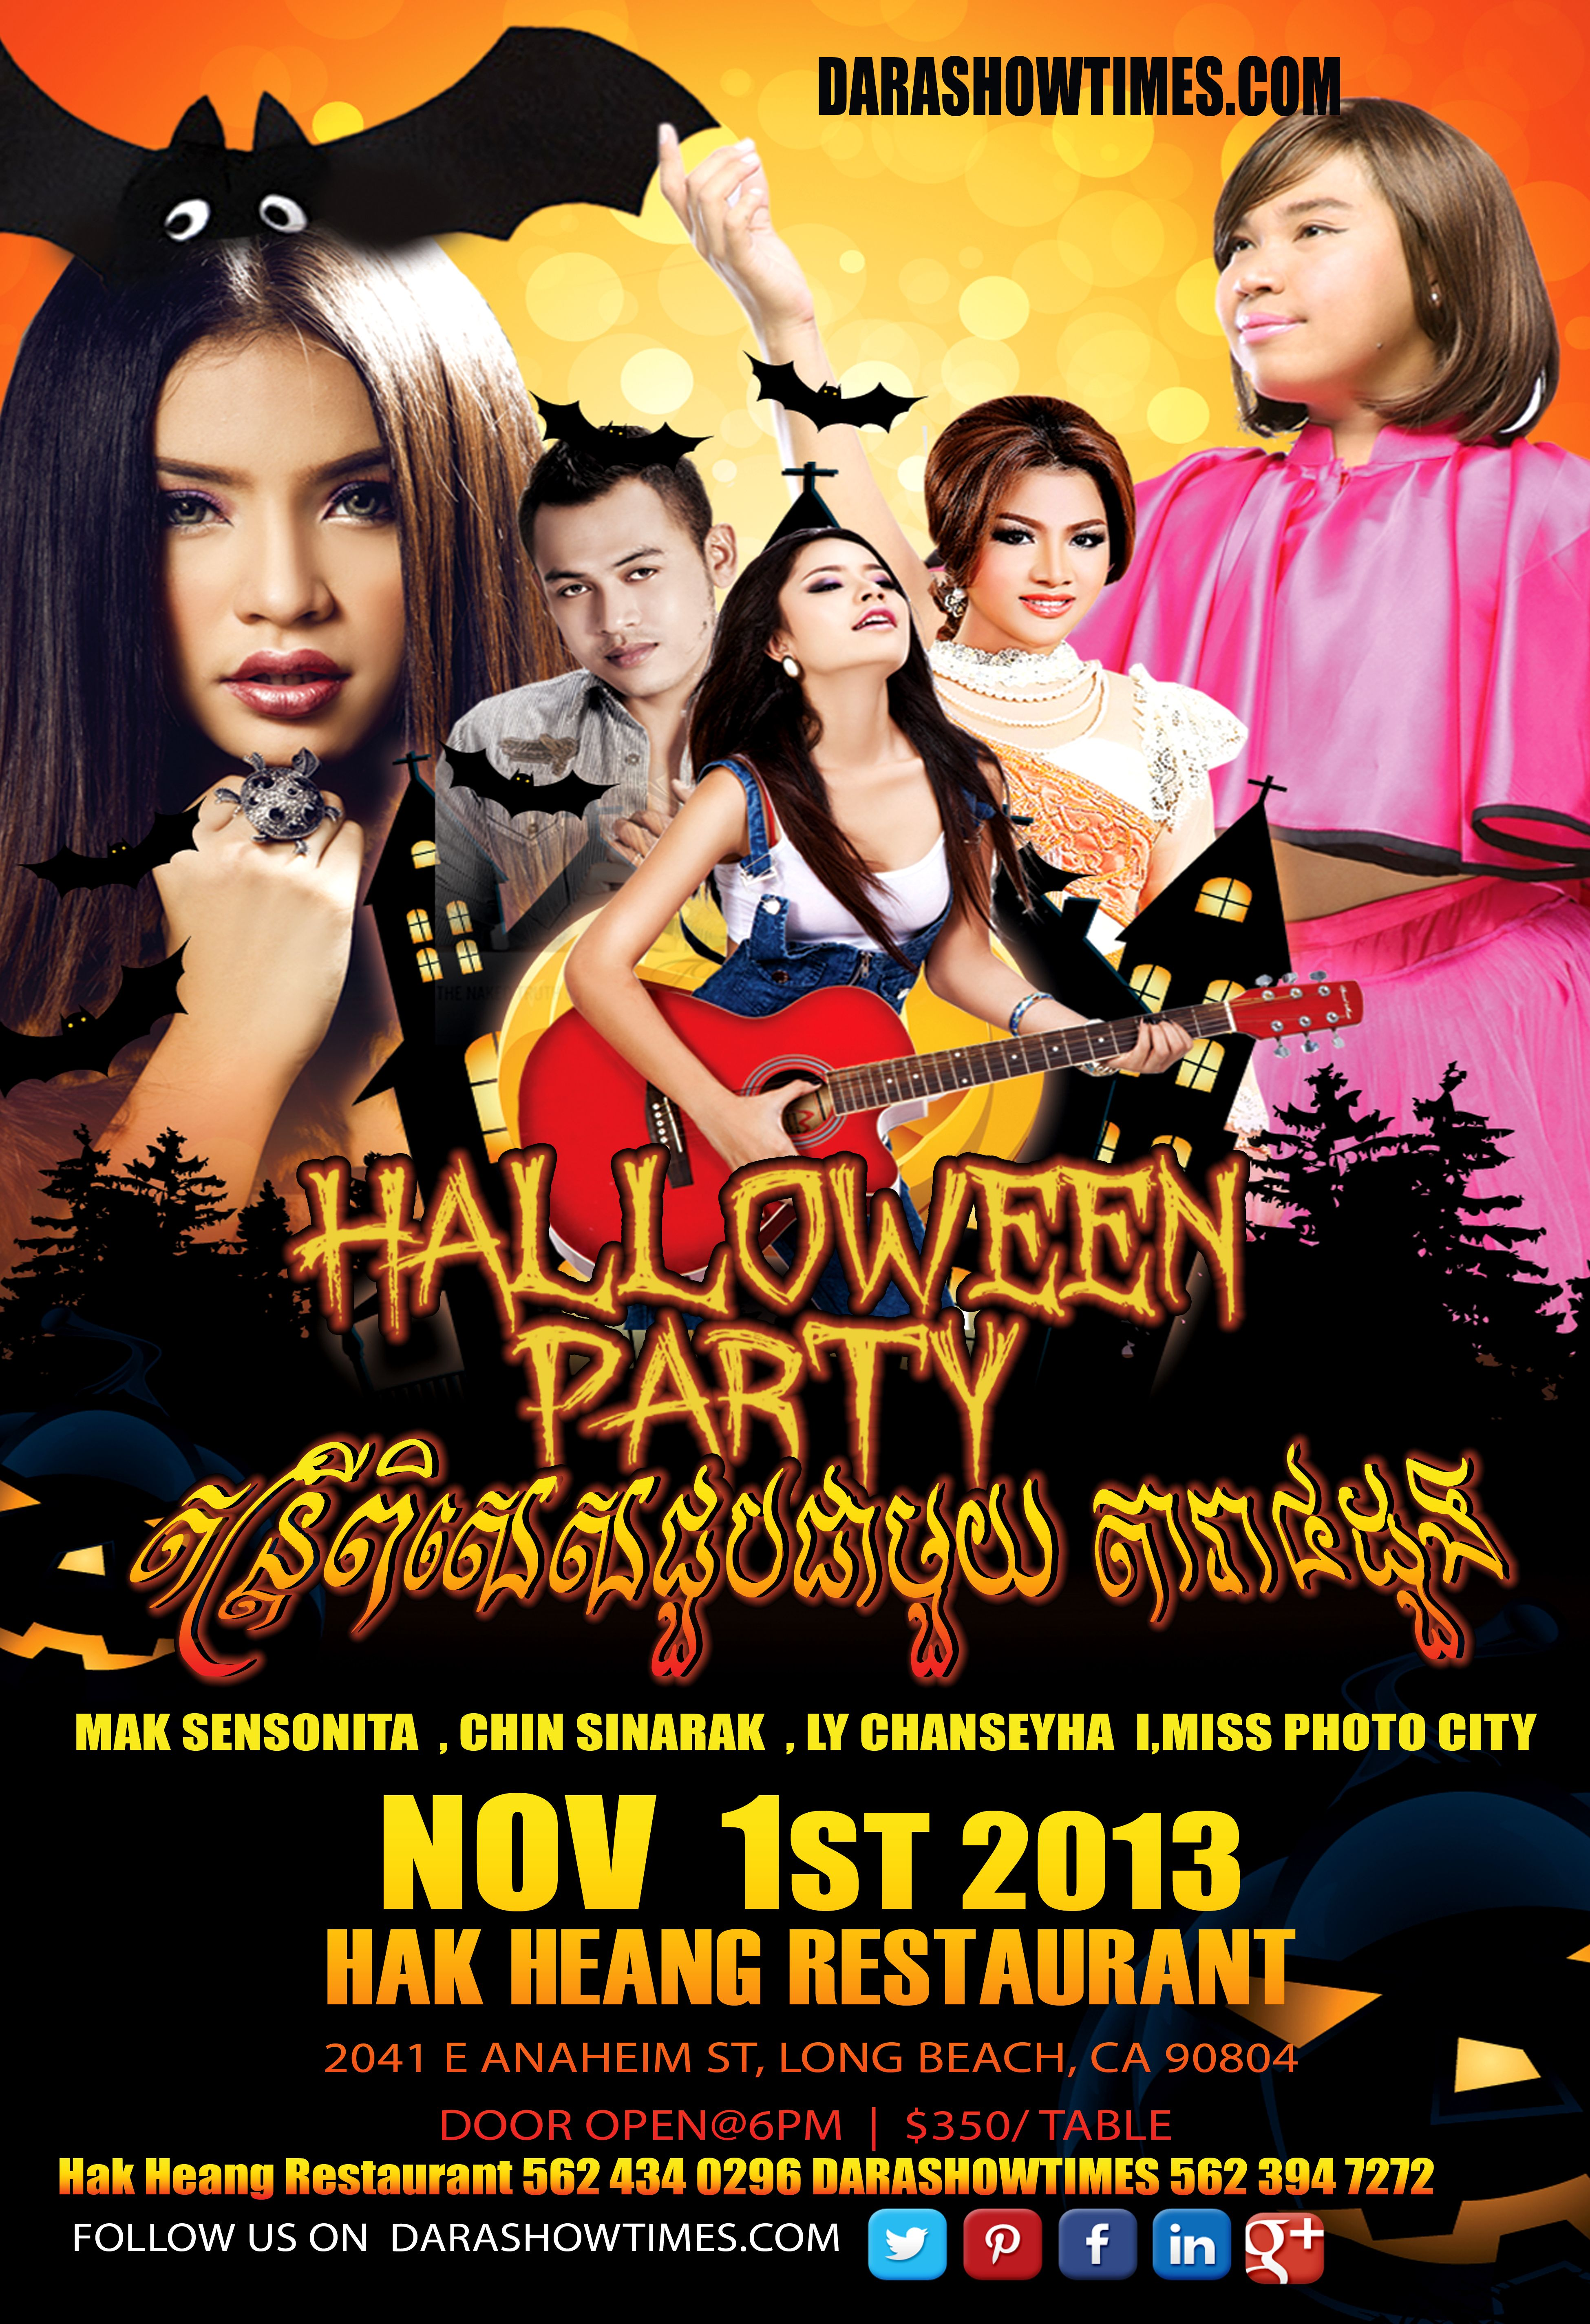 See You Again With Darashowtimes.com On Halloween Party Time NOV ...